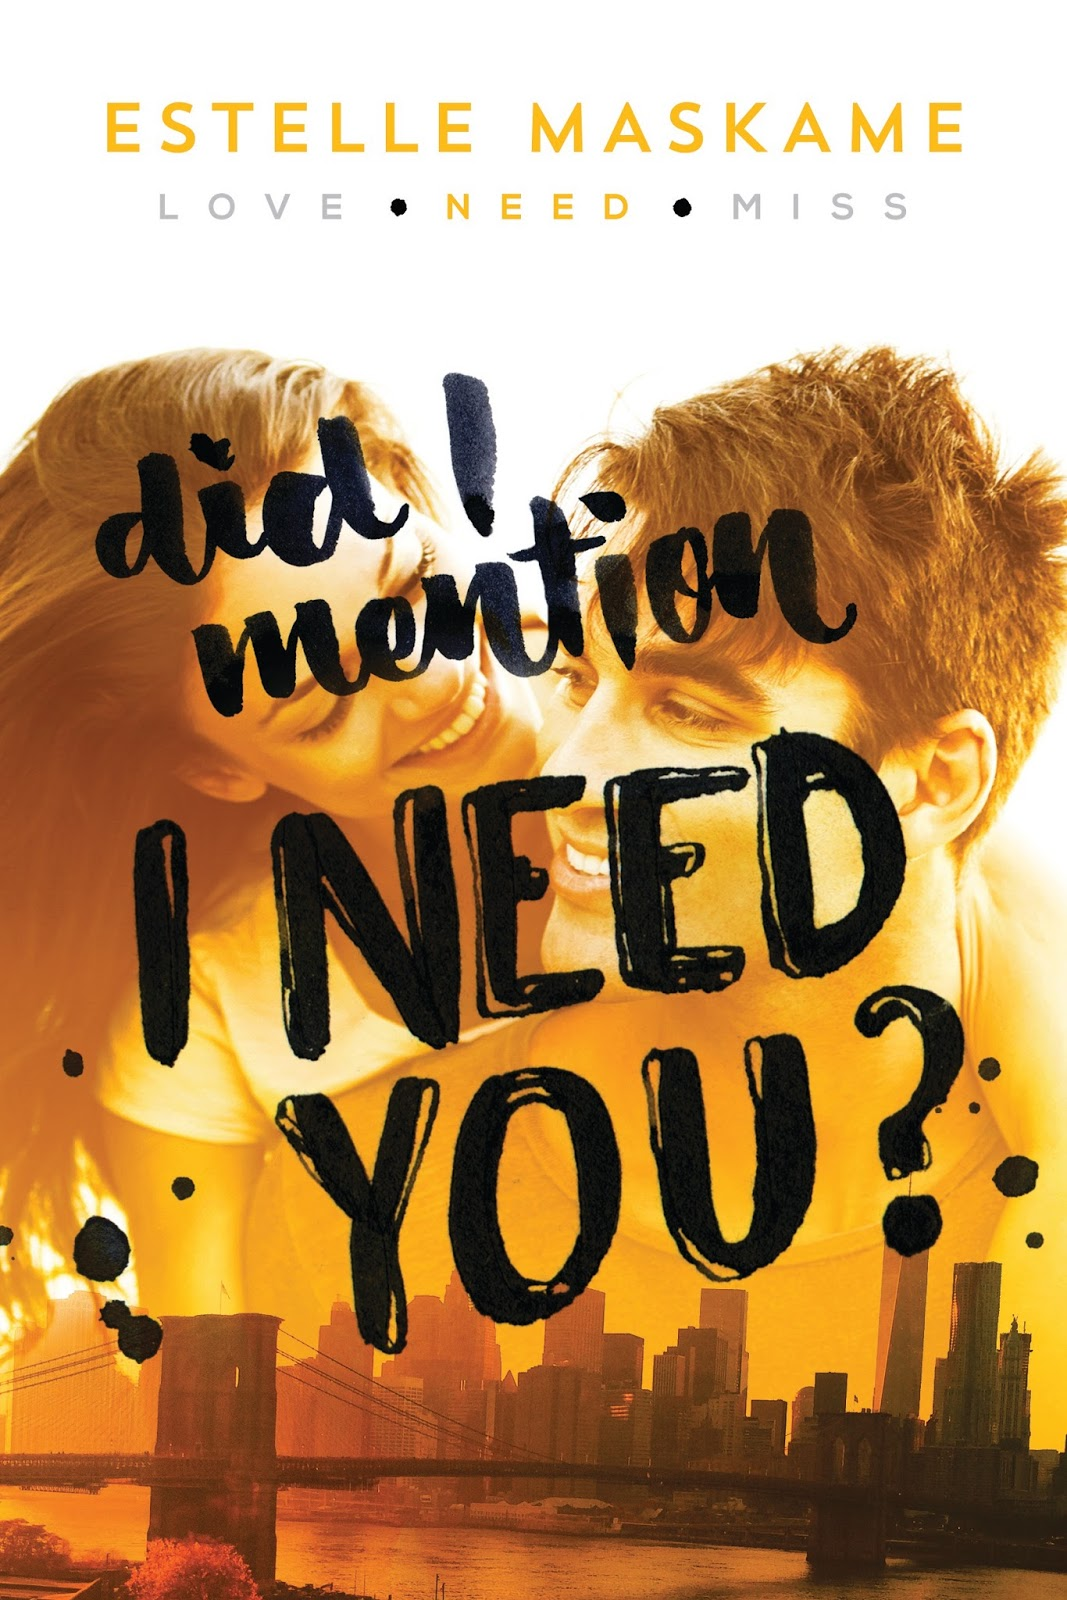 Blog De Descarga De Libros Descarga Need You You 2 Pdf Estelle Maskame El Mundo